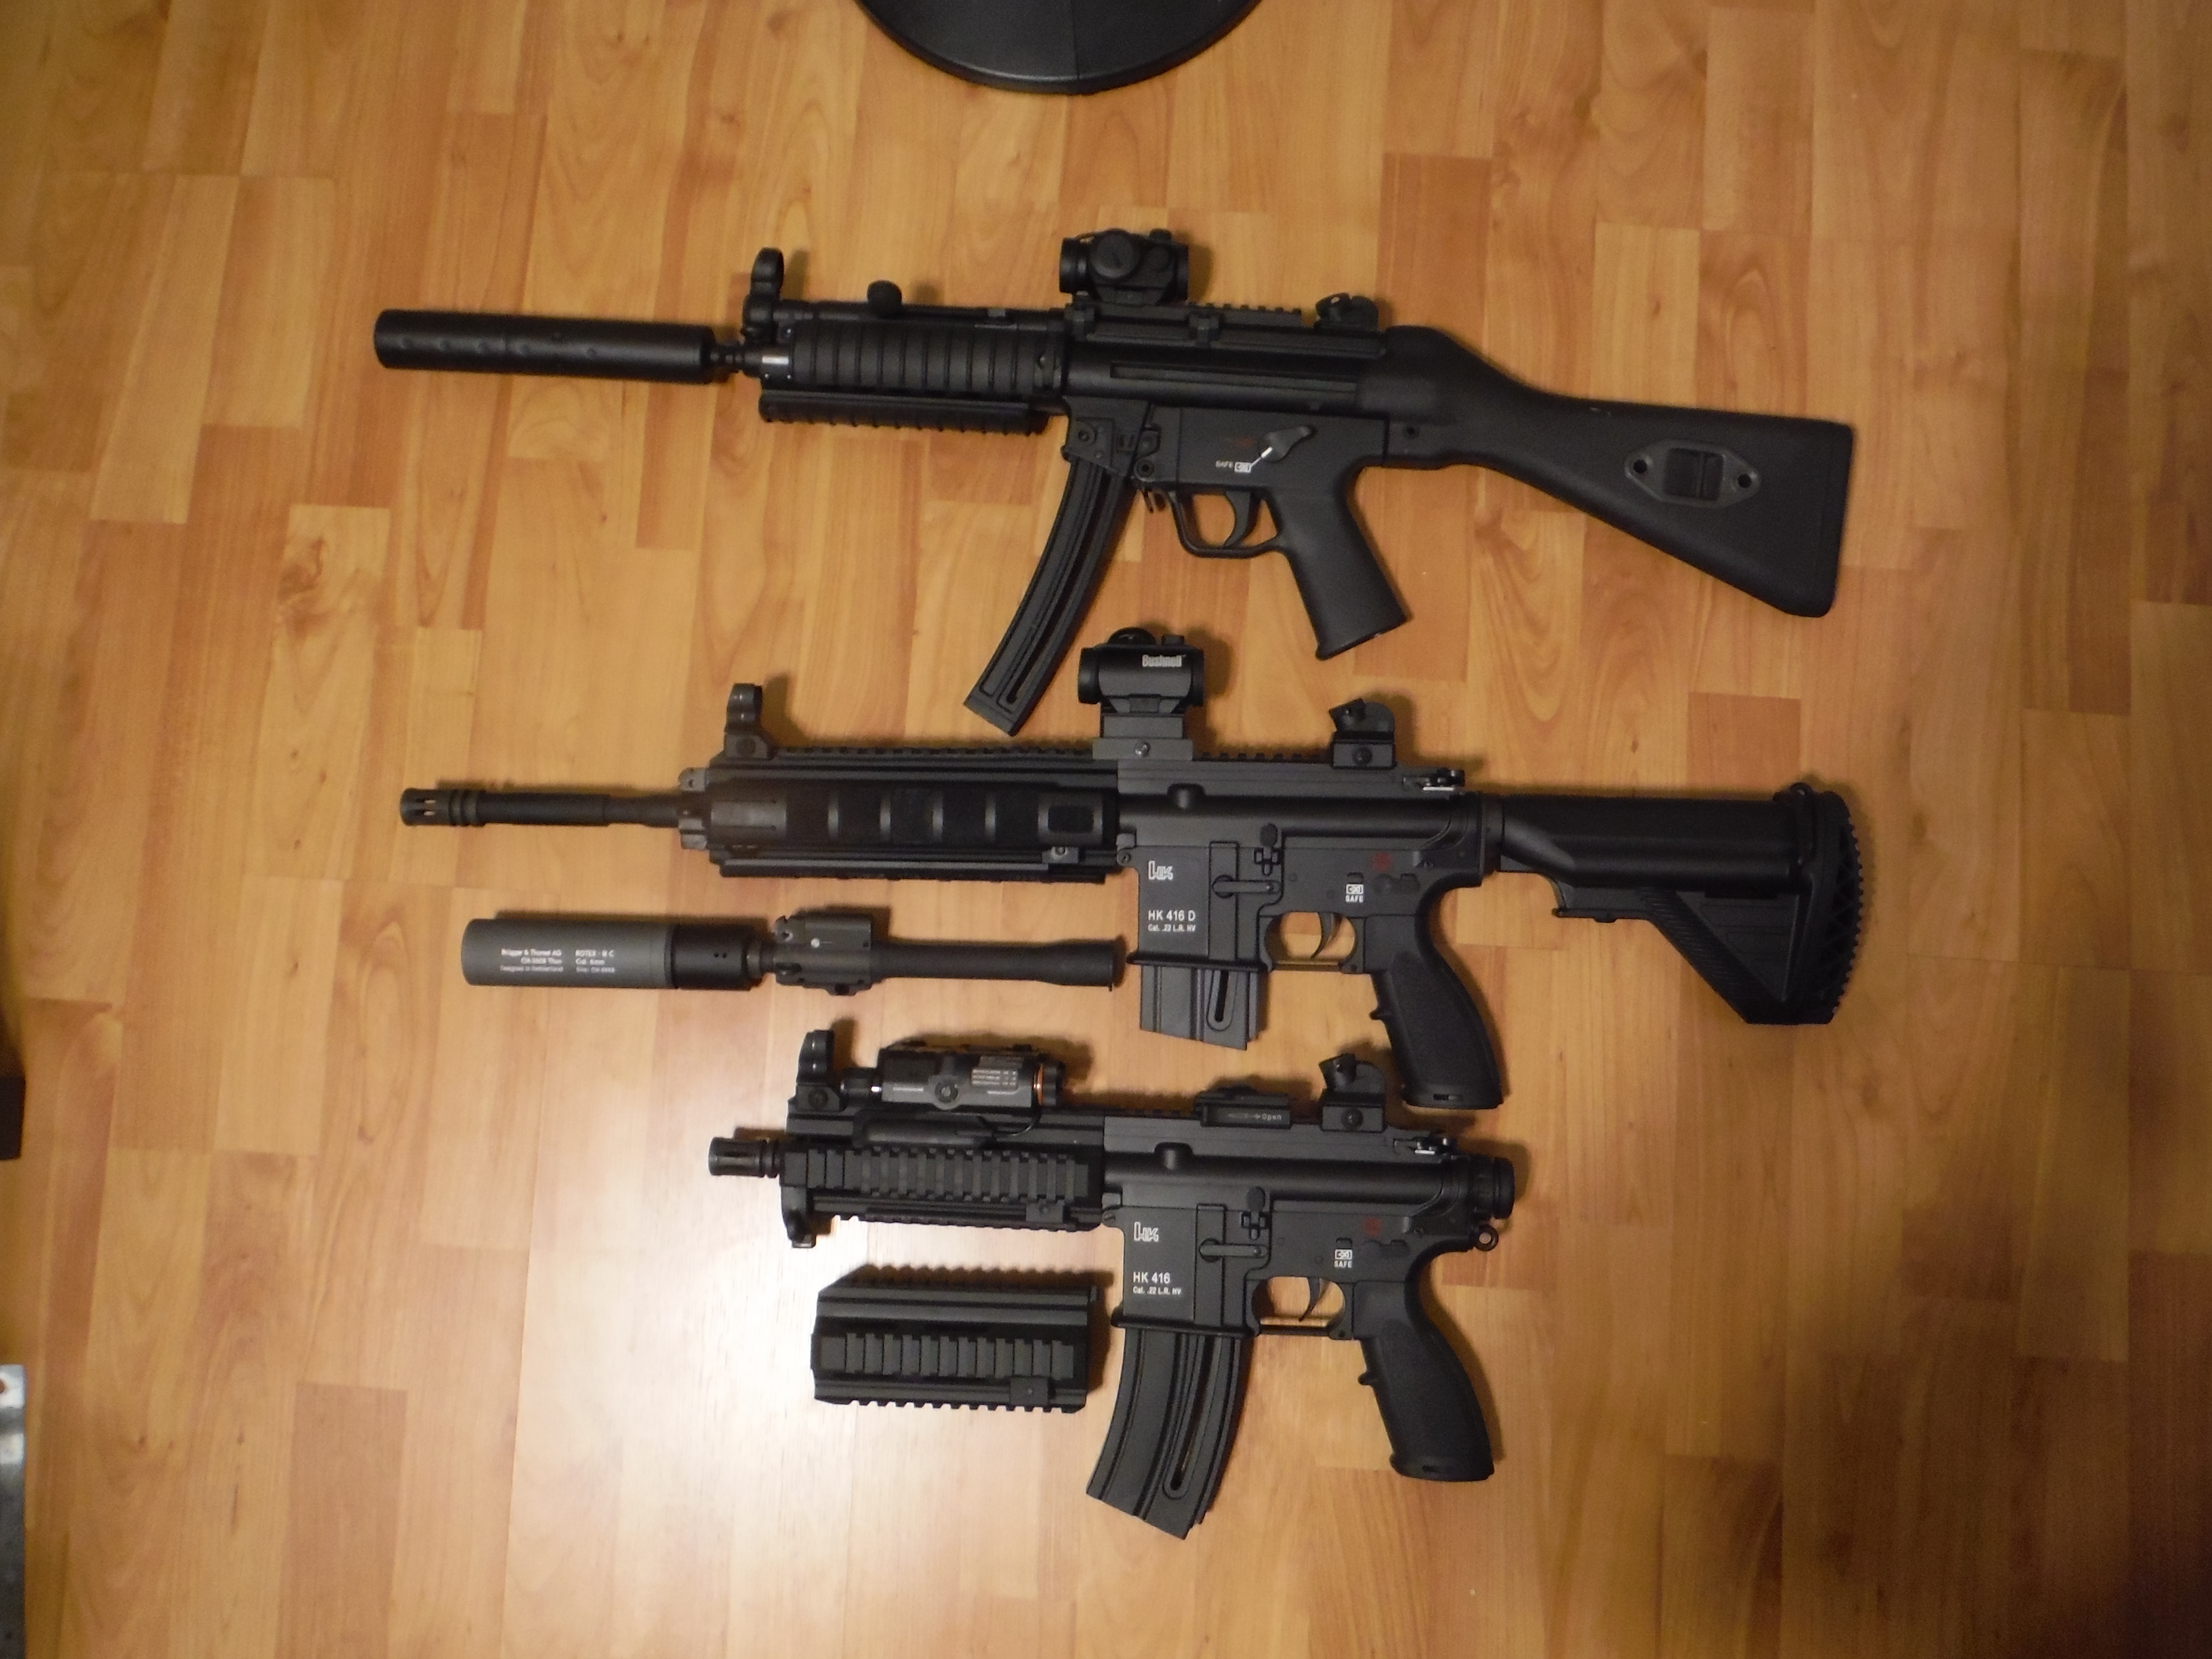 What airsoft accessories will fit a HK branded Umarex MP5  22?